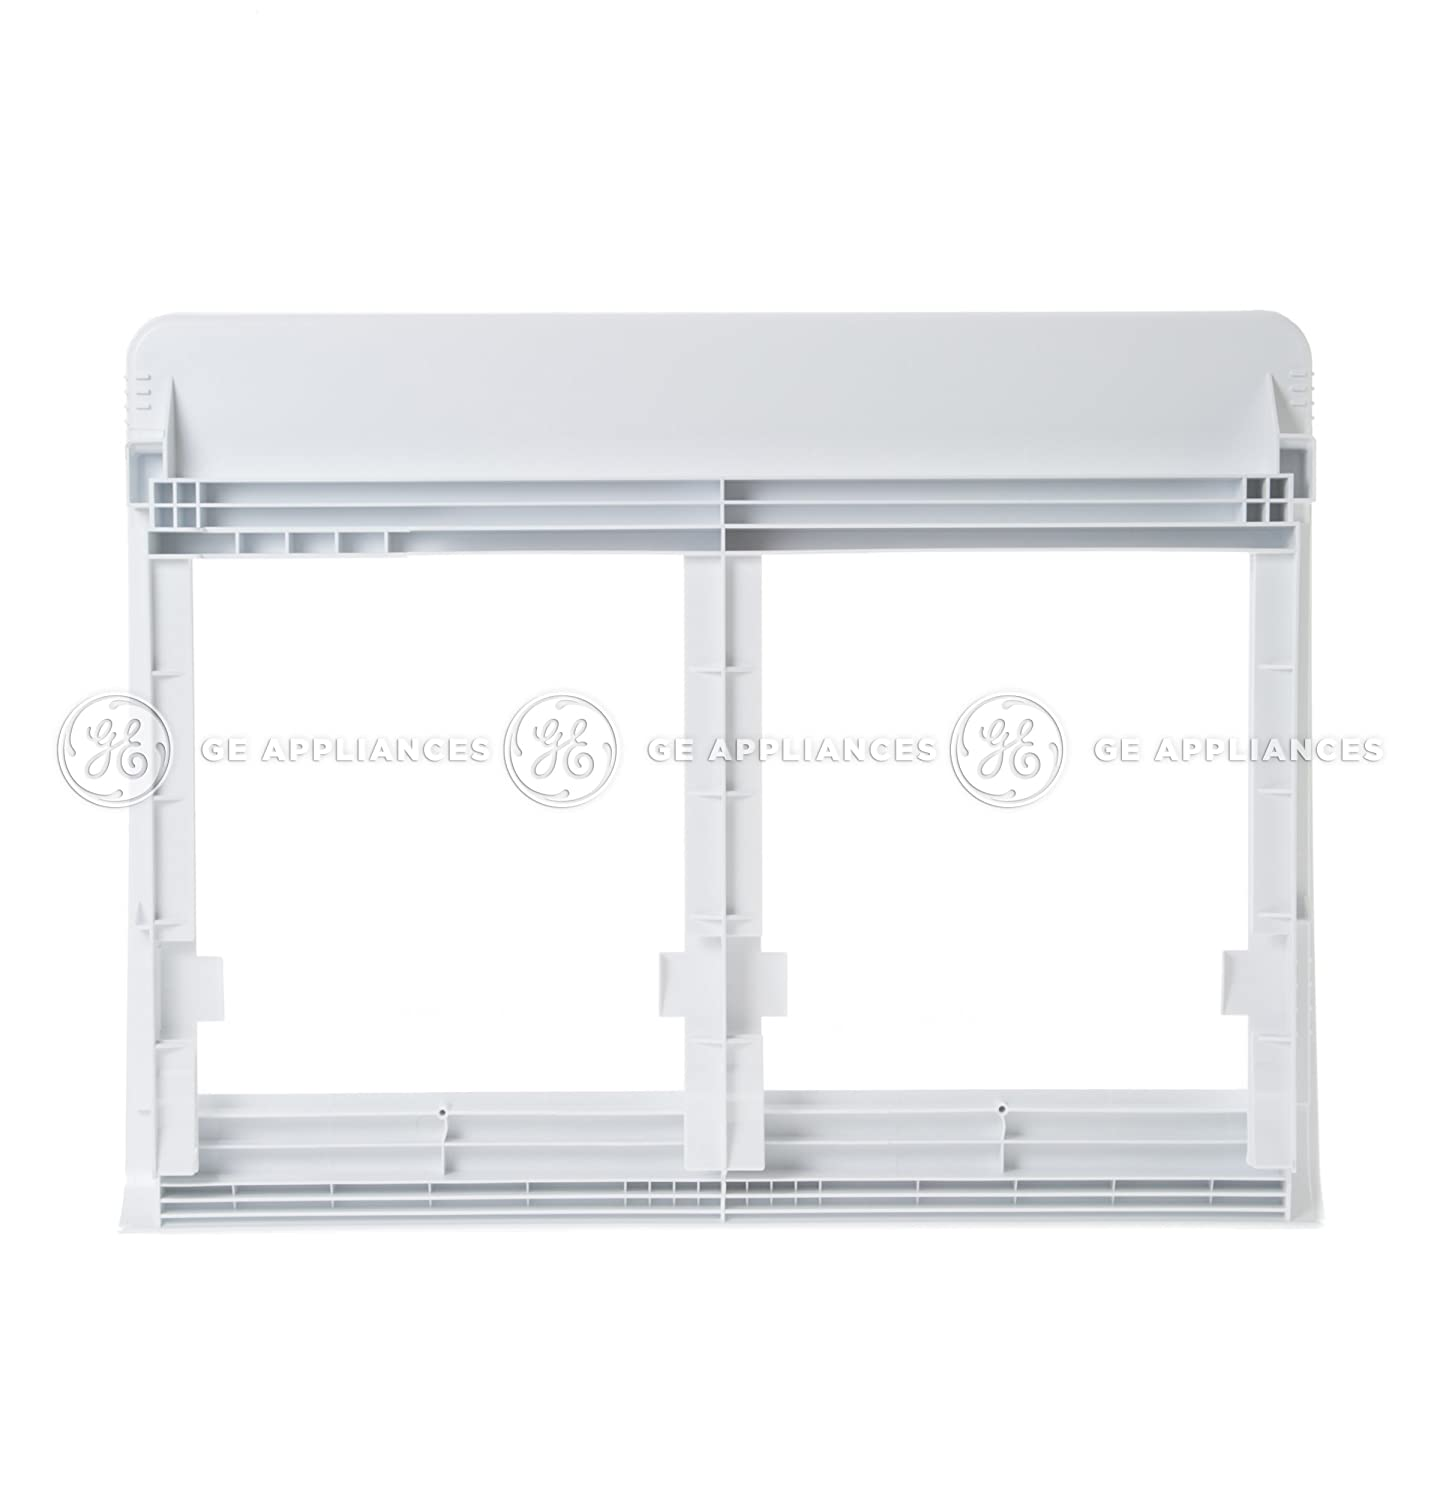 General Electric WR17X11662 GE REFRIGERATOR CRISPER COVER FRAME